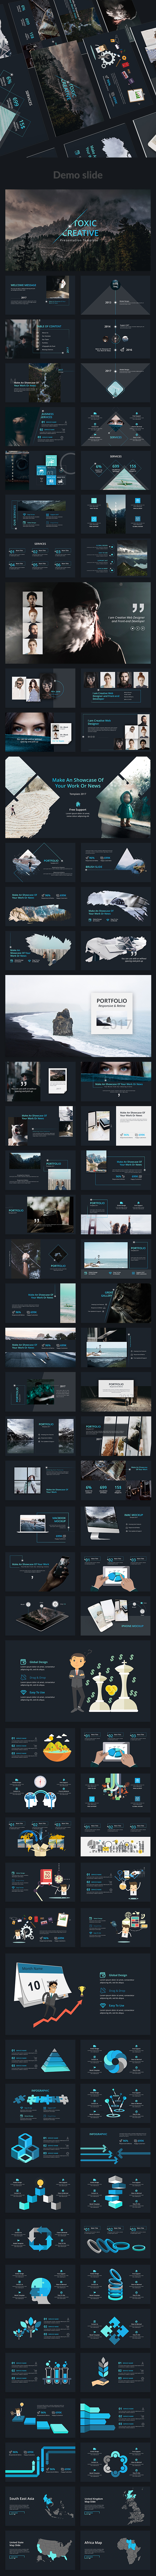 Toxic V2 Creative Keynote Template - Creative Keynote Templates